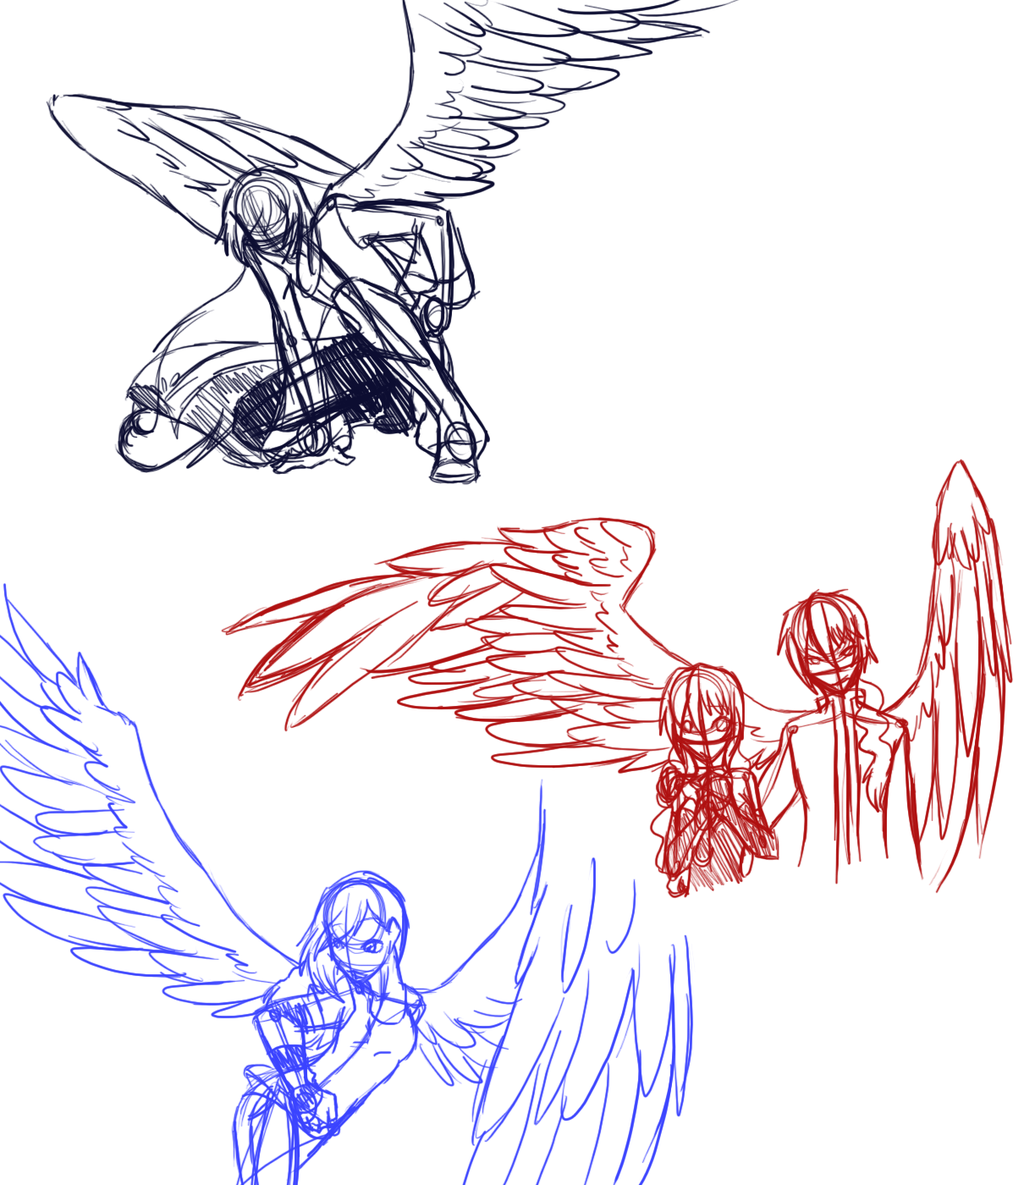 1024x1185 Winged Poses Anime People With Wings Drawings H.a. Sketch Dump